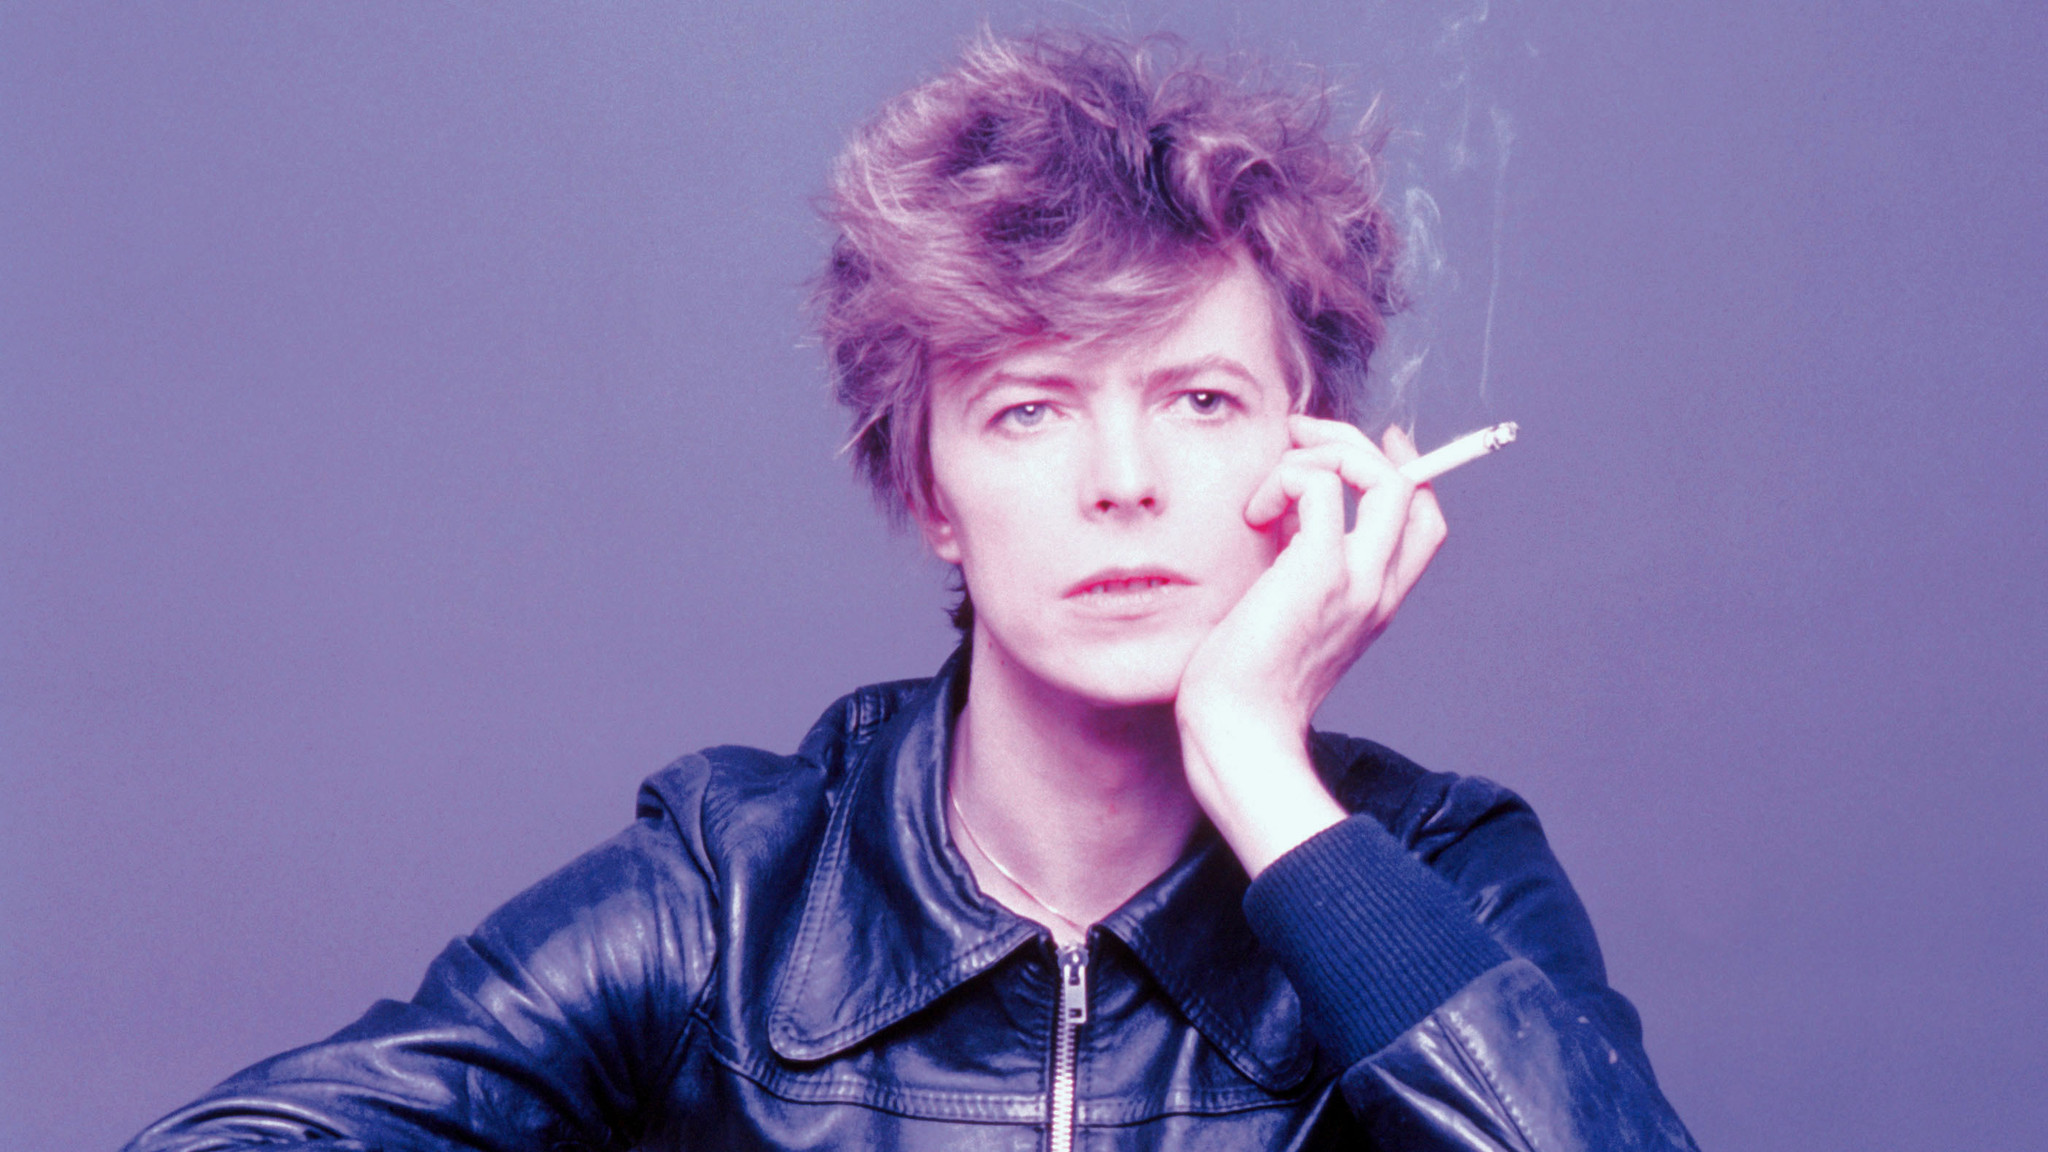 Fall In Chicago Wallpaper David Bowie A Look Back At Highlights From The Singer S